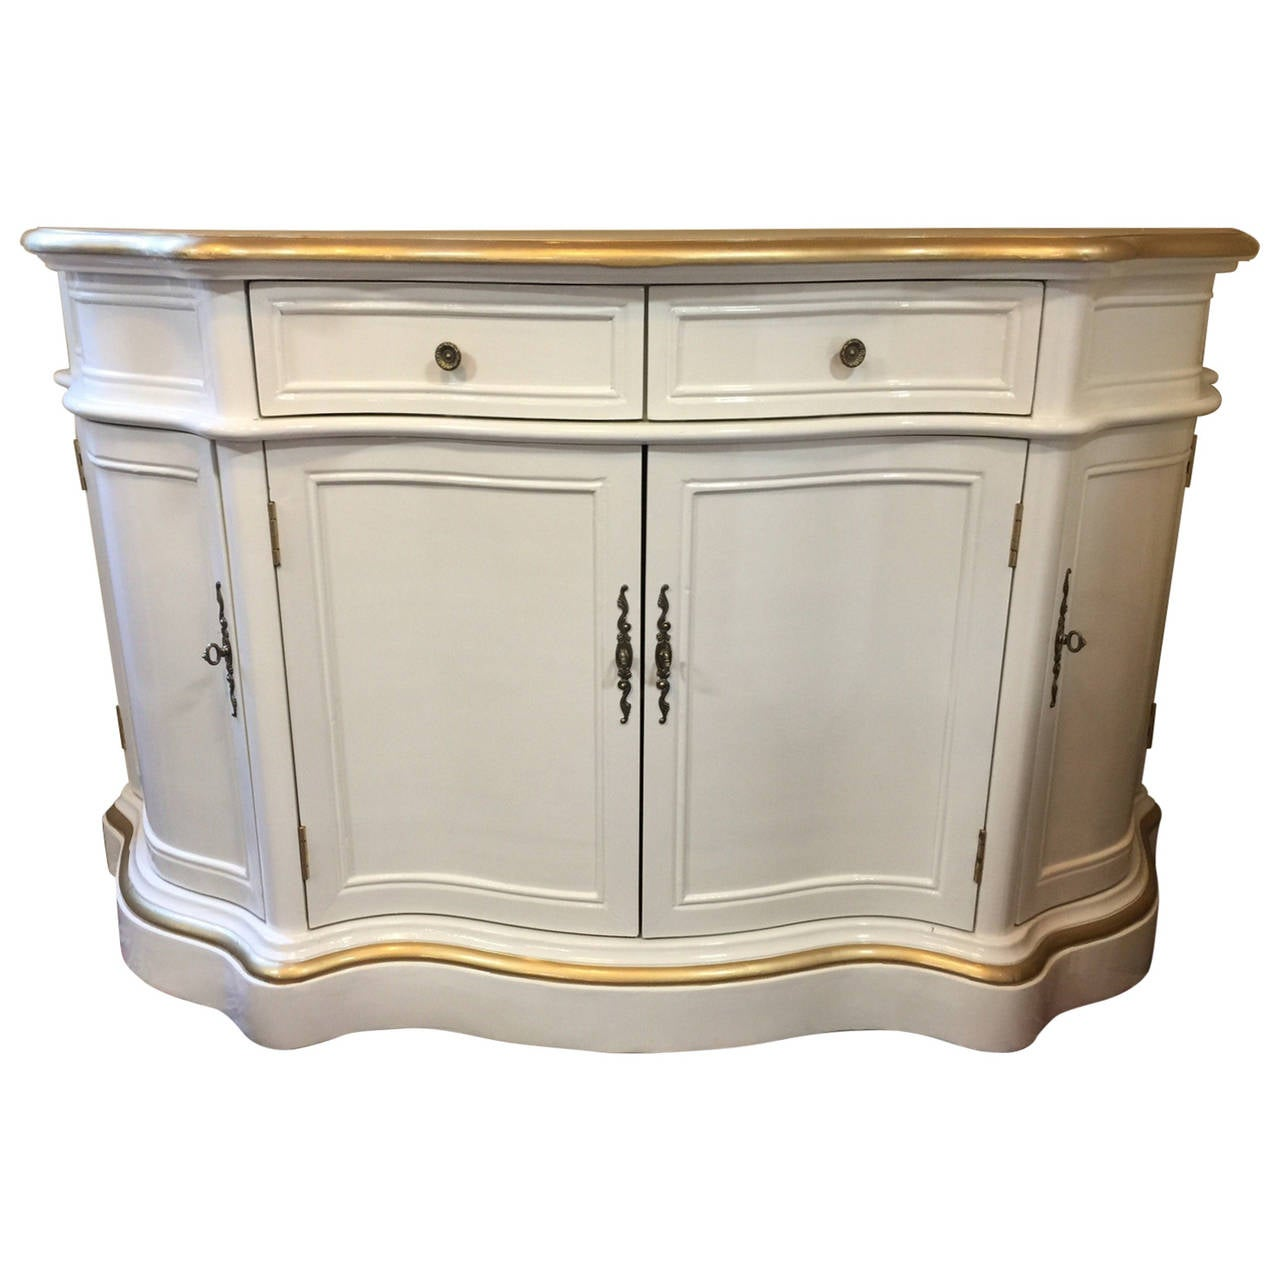 Curvy lacquered sideboard in cream and gold at 1stdibs for Sideboard gold